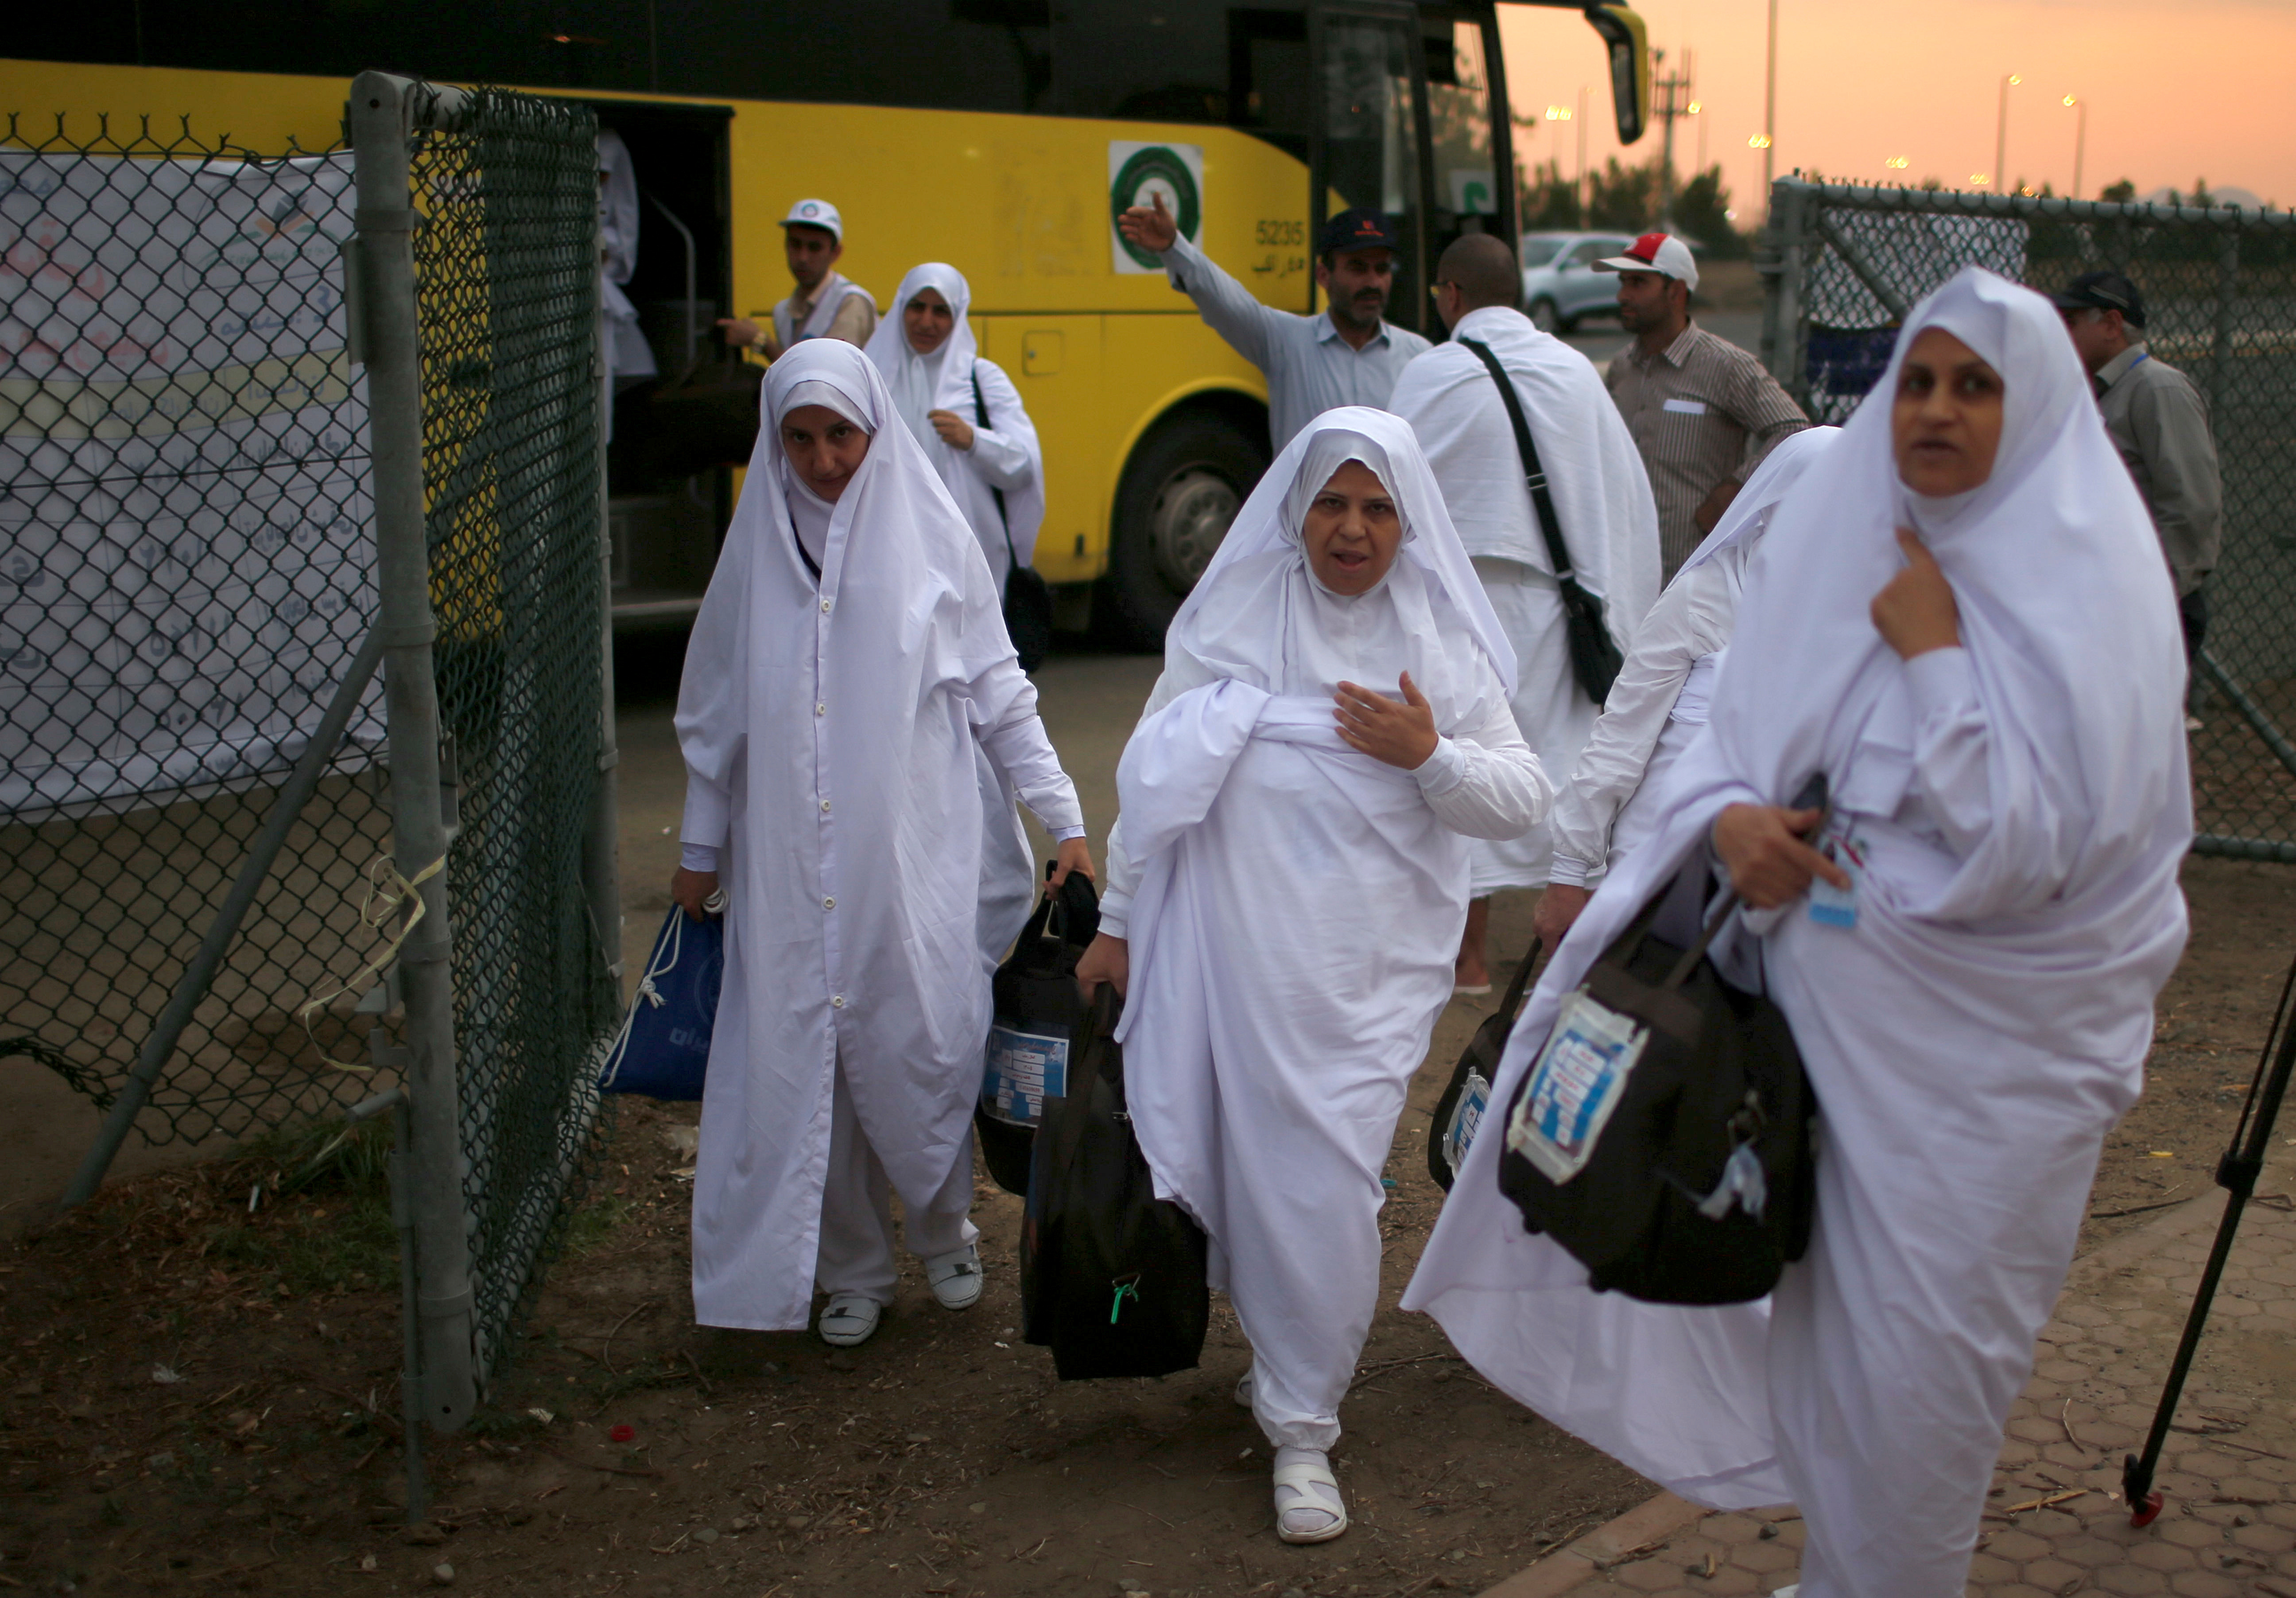 Iranian pilgrims arrive for the annual haj pilgrimage, in Arafat outside the holy city of Mecca, Saudi Arabia August 30, 2017. Picture taken August 30, 2017.